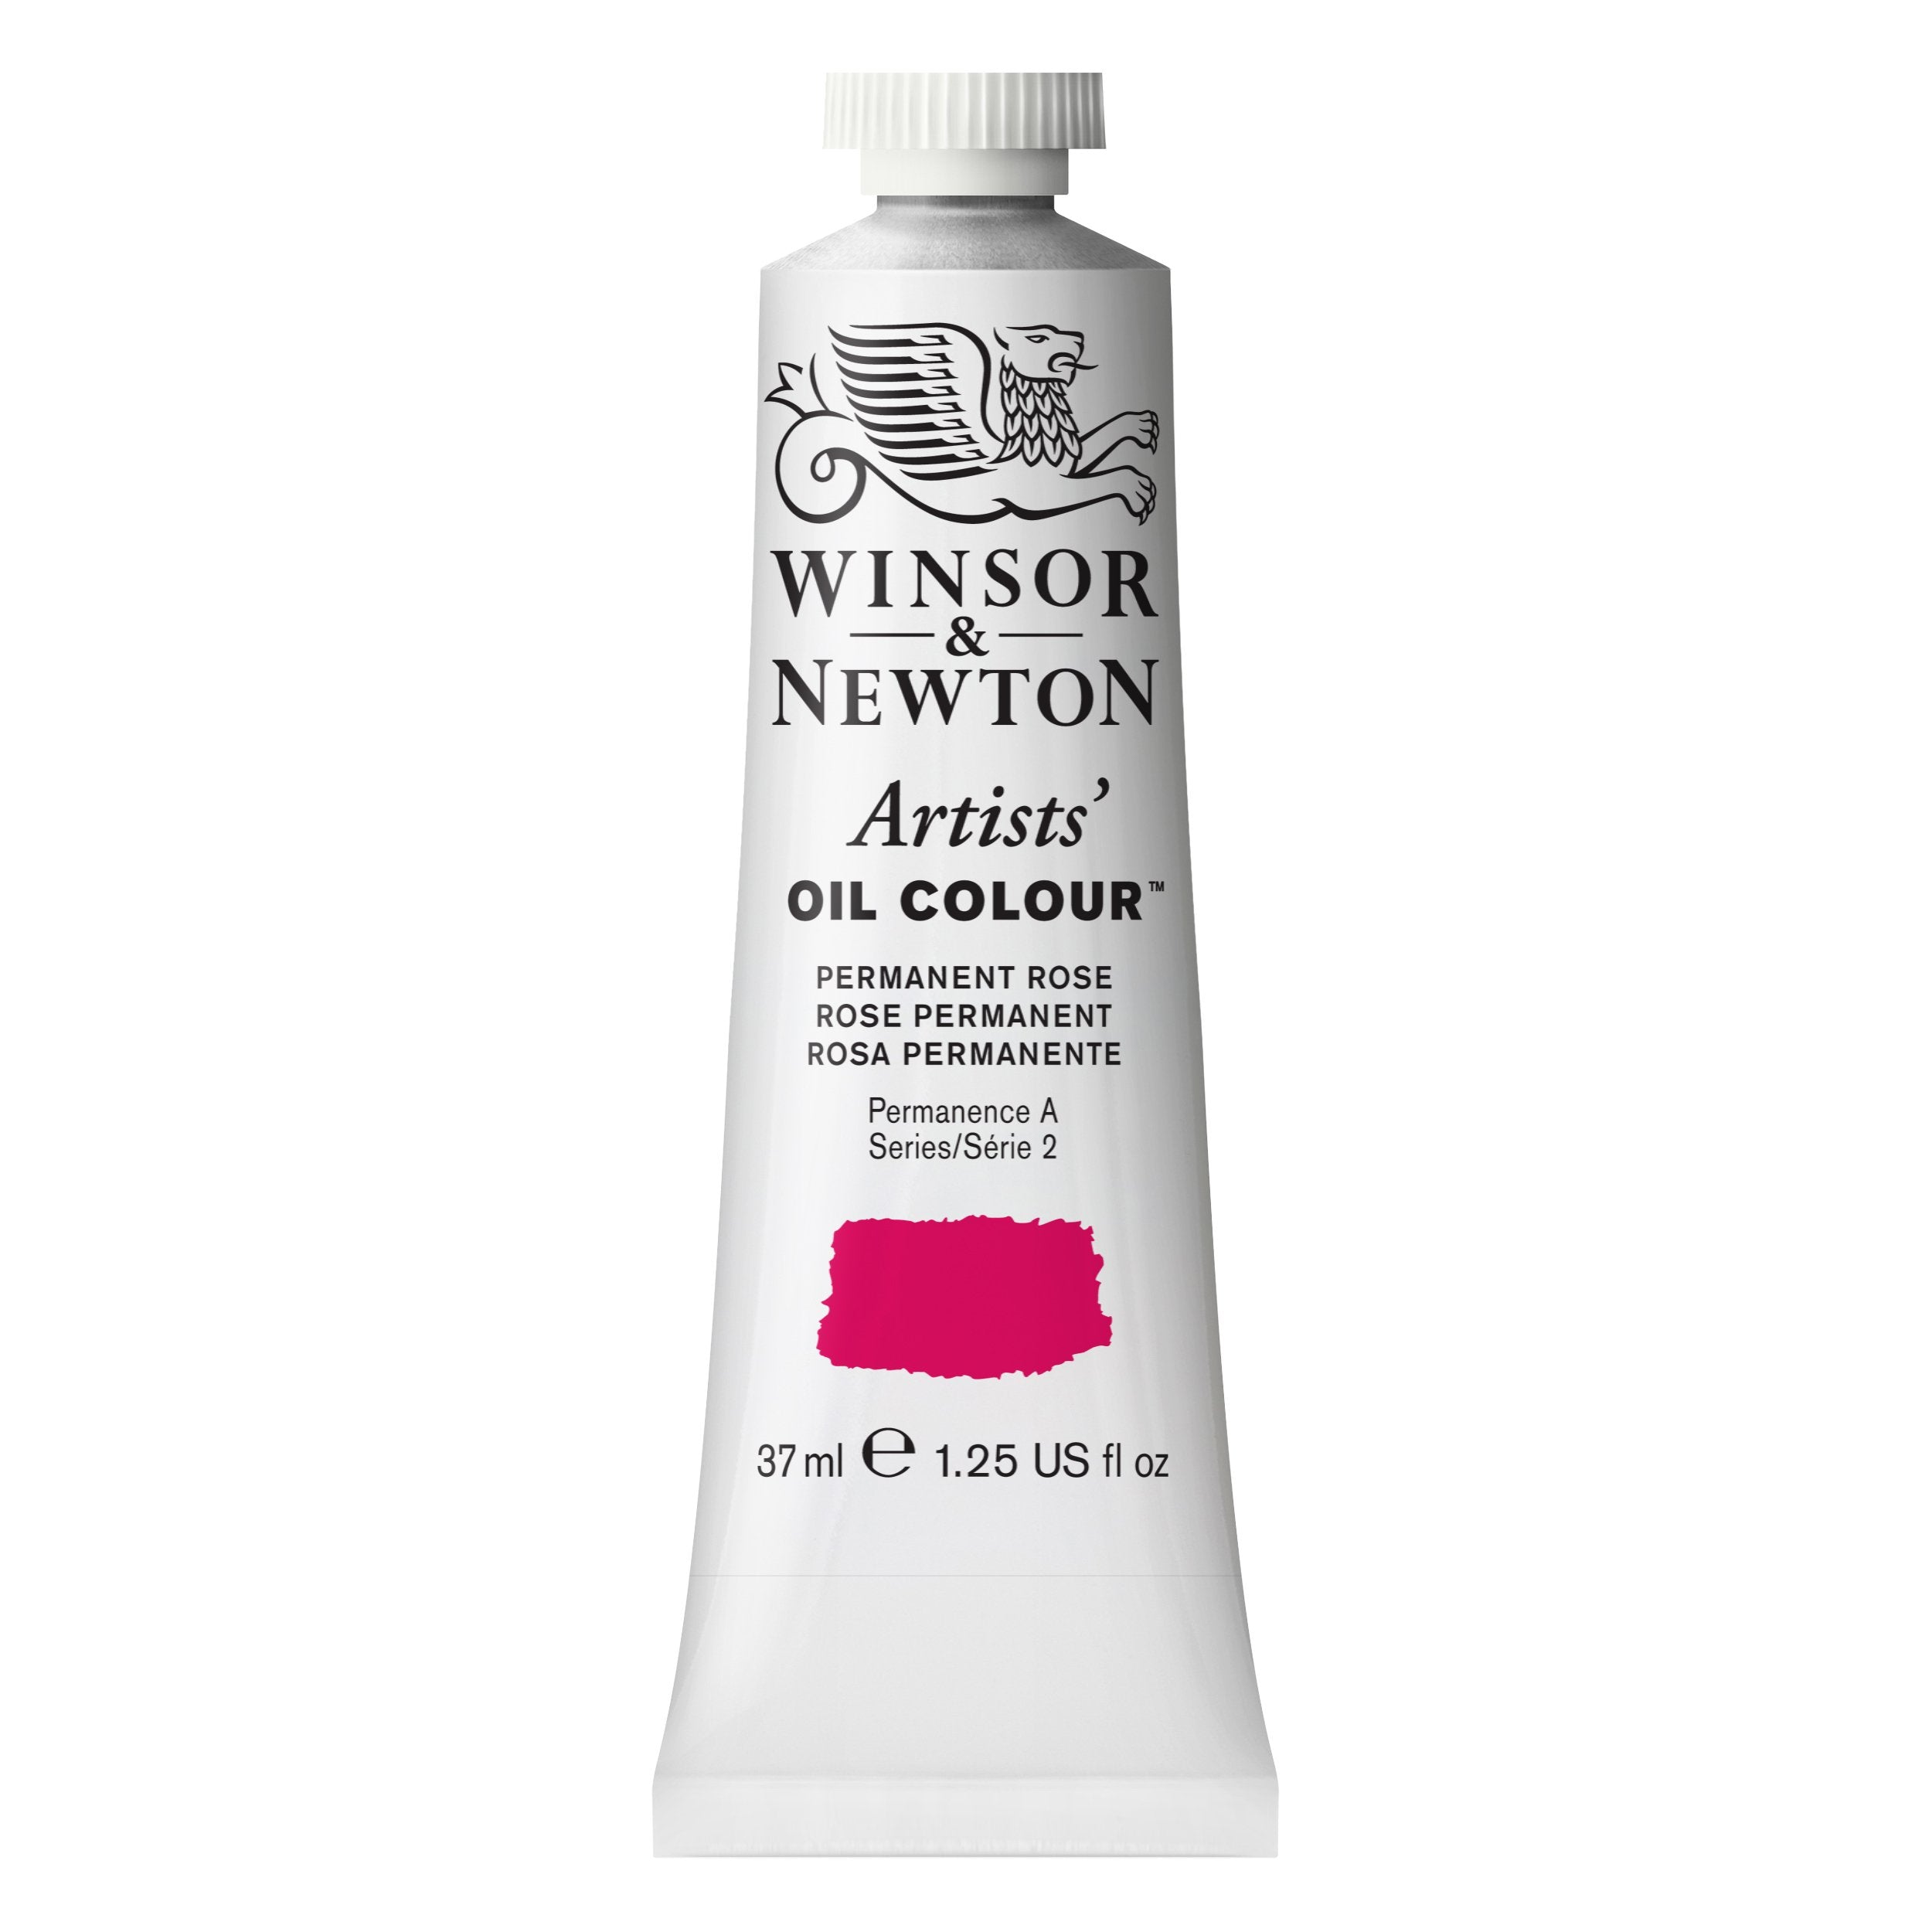 Winsor & Newton Artists Oil Color, 37ml, Permanent Rose